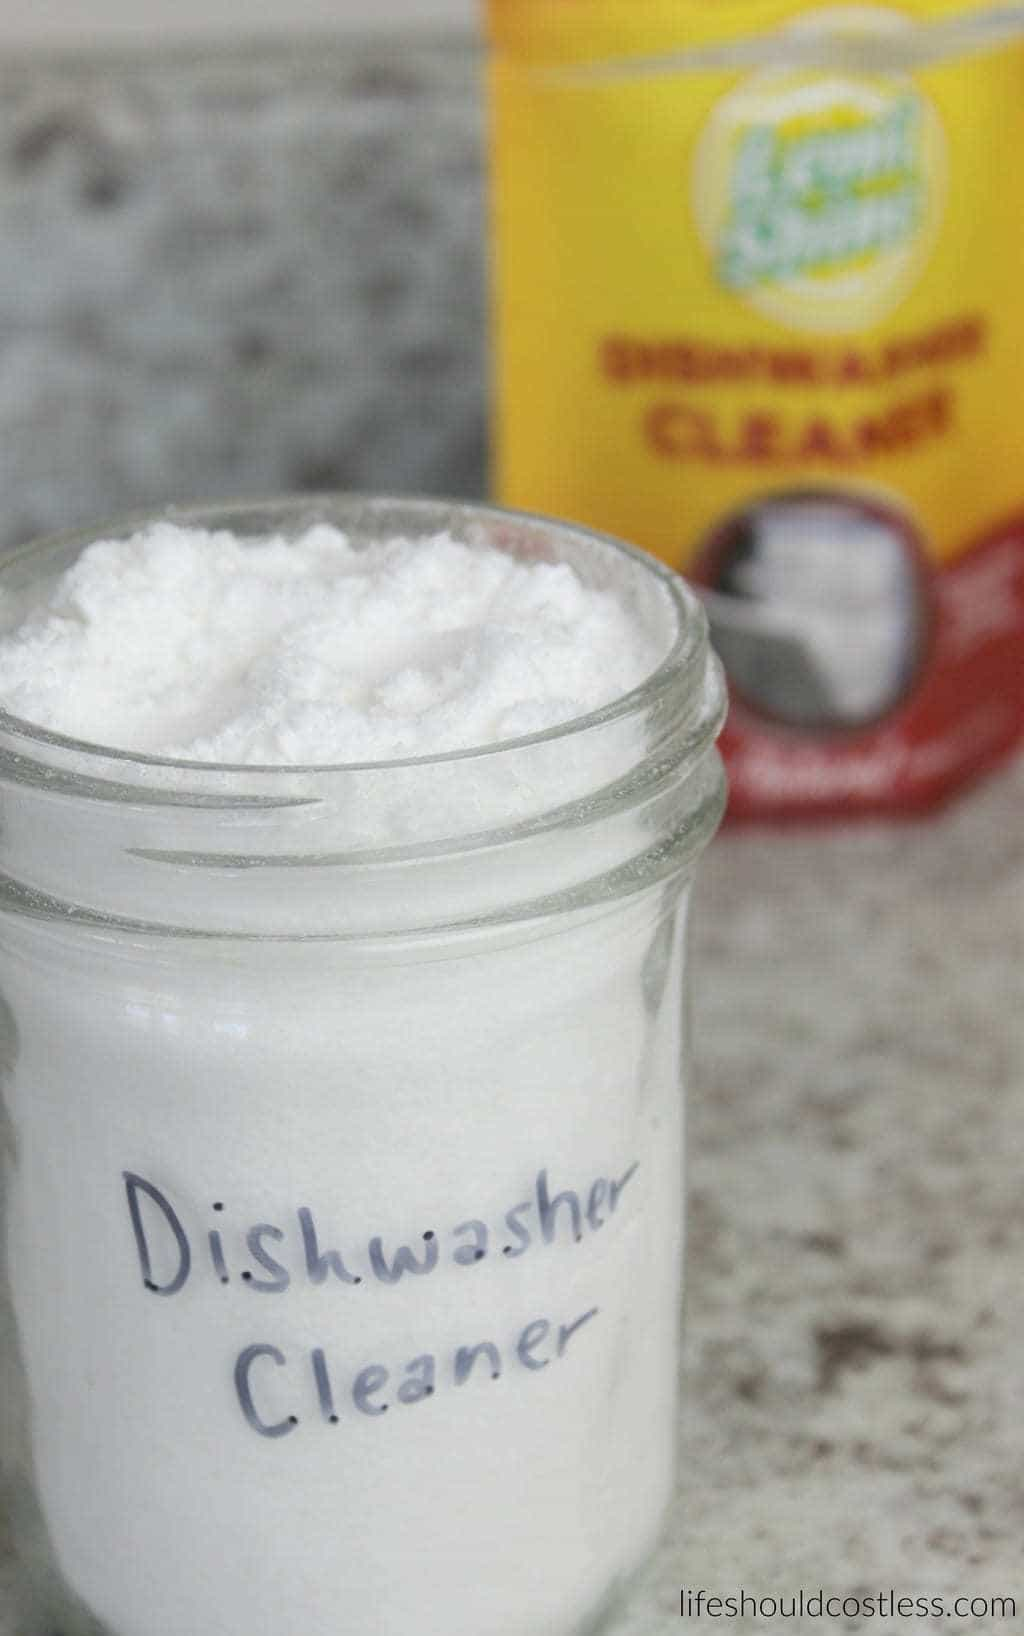 CopyCat Lemi Shine Dishwasher Cleaner Recipe. It works just like the real stuff but at a fraction of the cost.